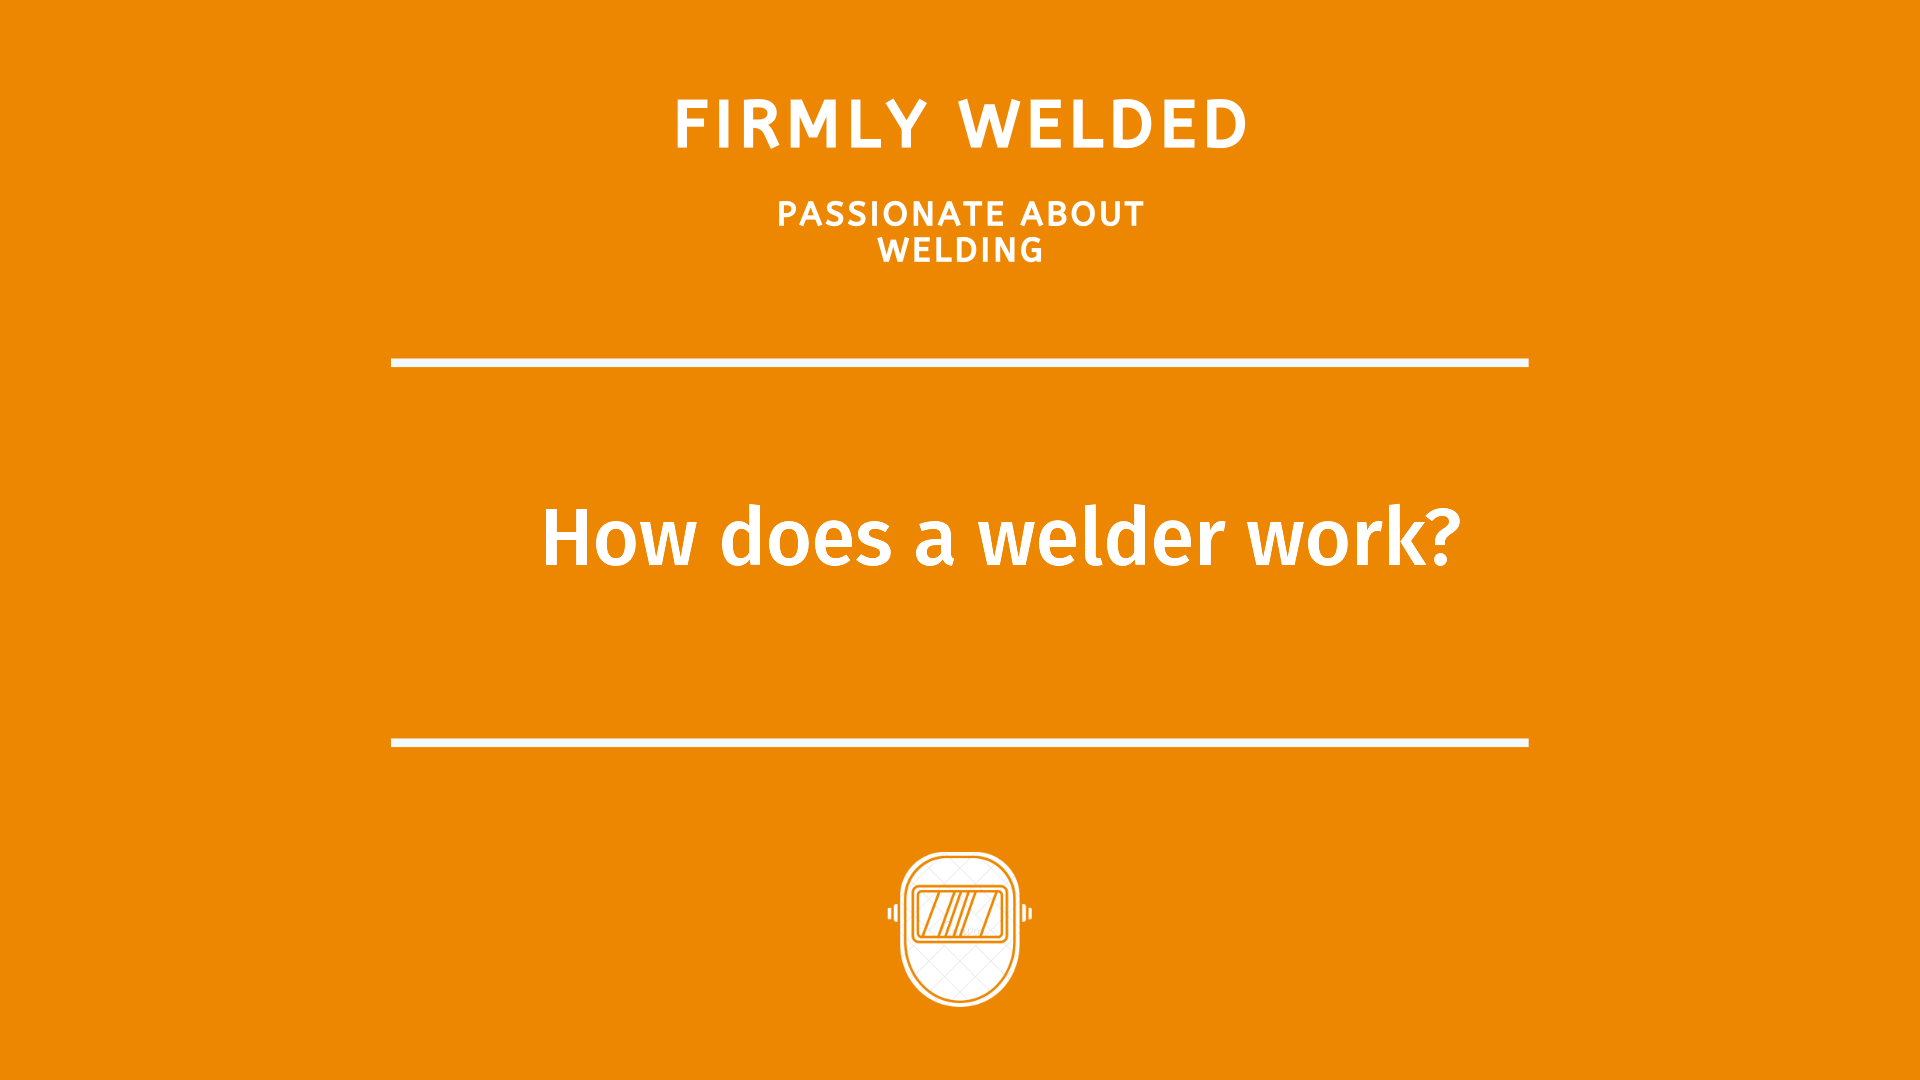 How does a welder work?